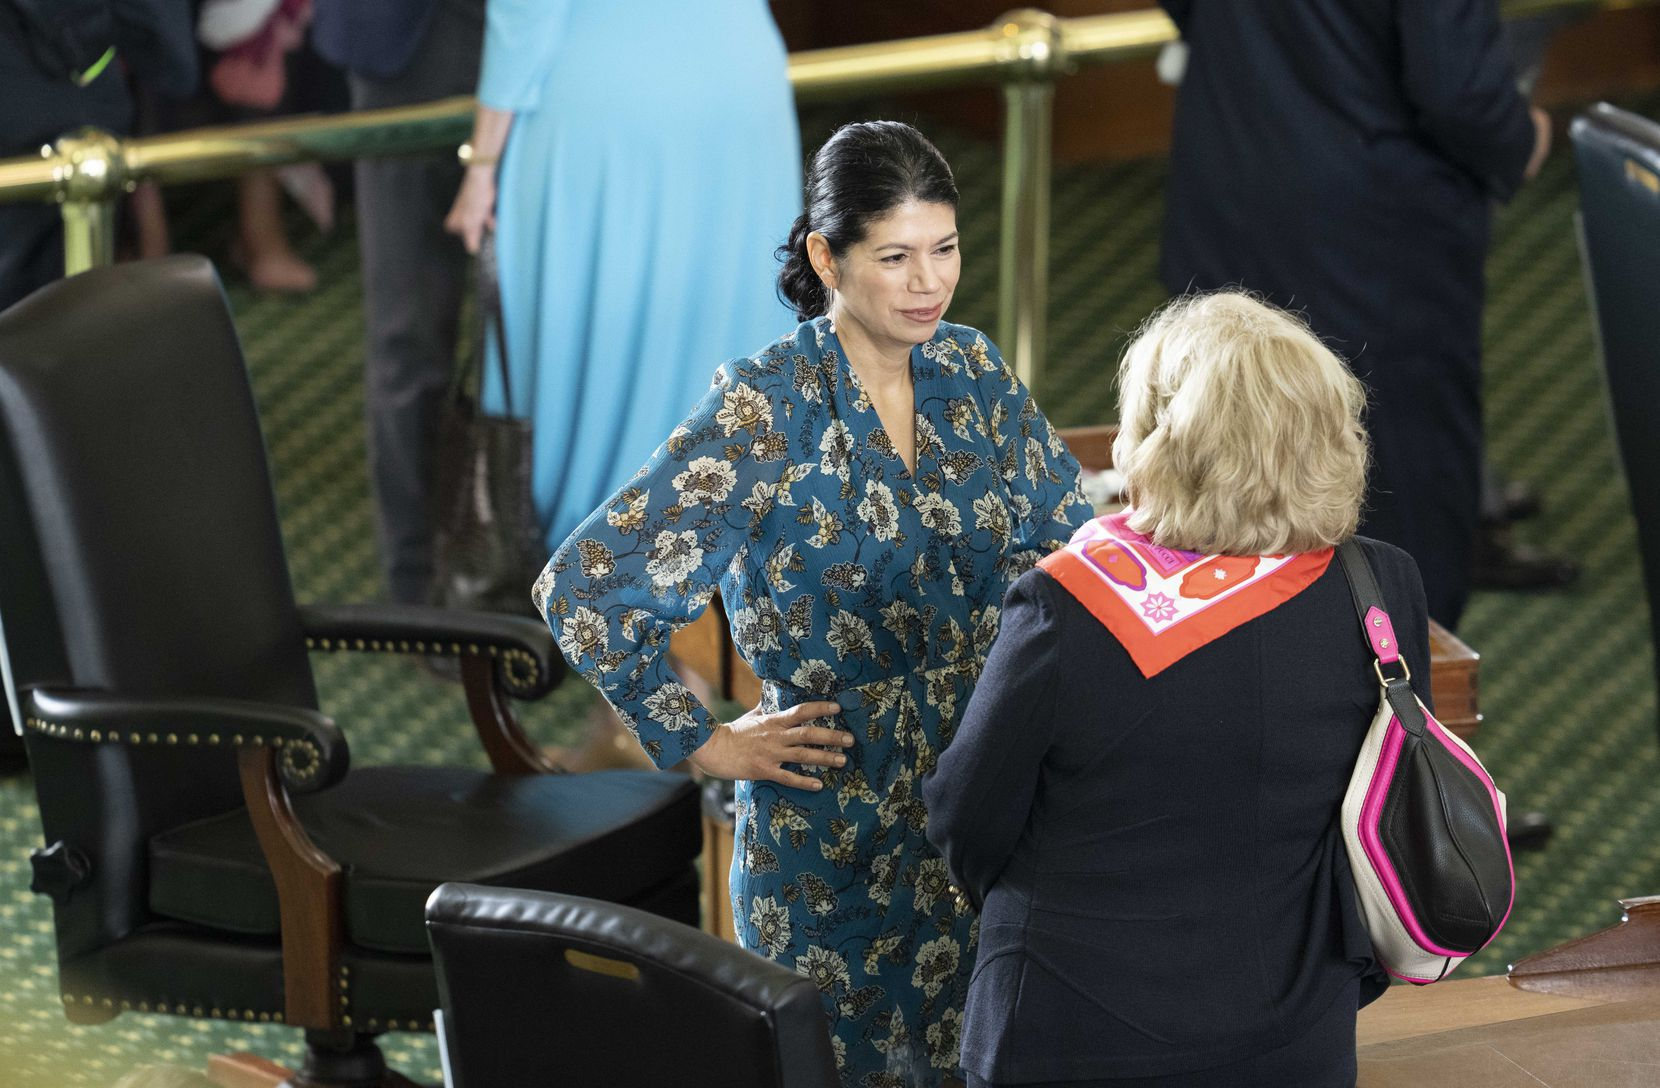 State Sen. Carol Alvarado, D-Houston, talked with retiring Sen. Jane Nelson (right), R-Flower Mound, during the opening of the special session on July 8, 2021. (Bob Daemmrich/CapitolPressPhoto)